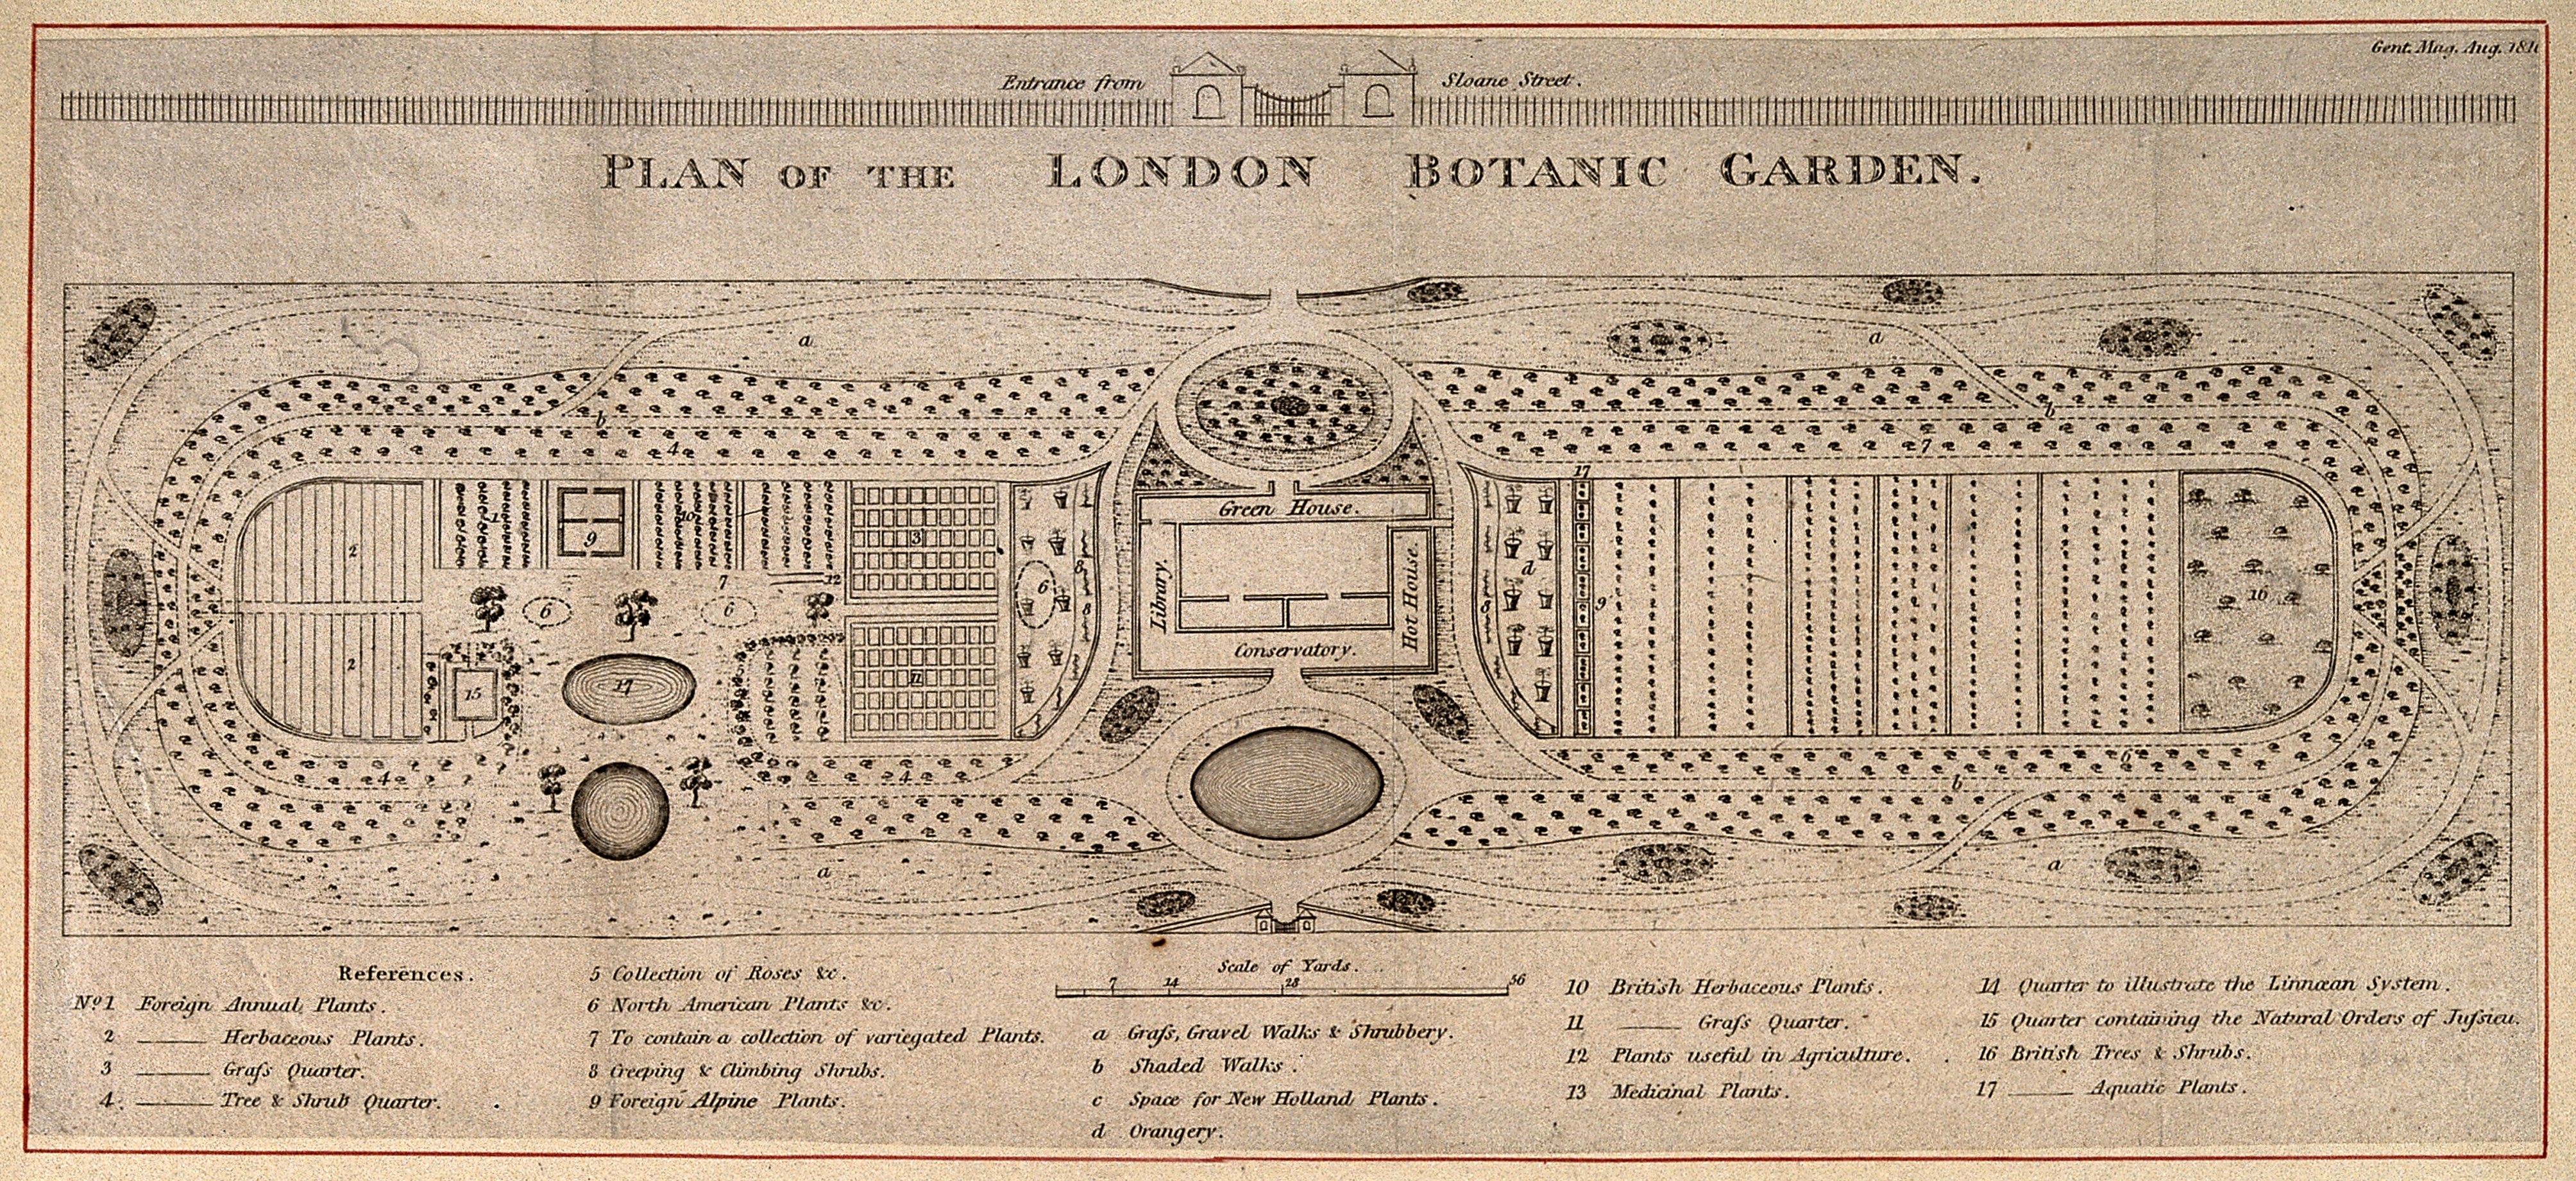 Physic garden wikipedia - Other Versions The Physic Garden Chelsea A Plan View With A Key Describin Wellcome V0014721